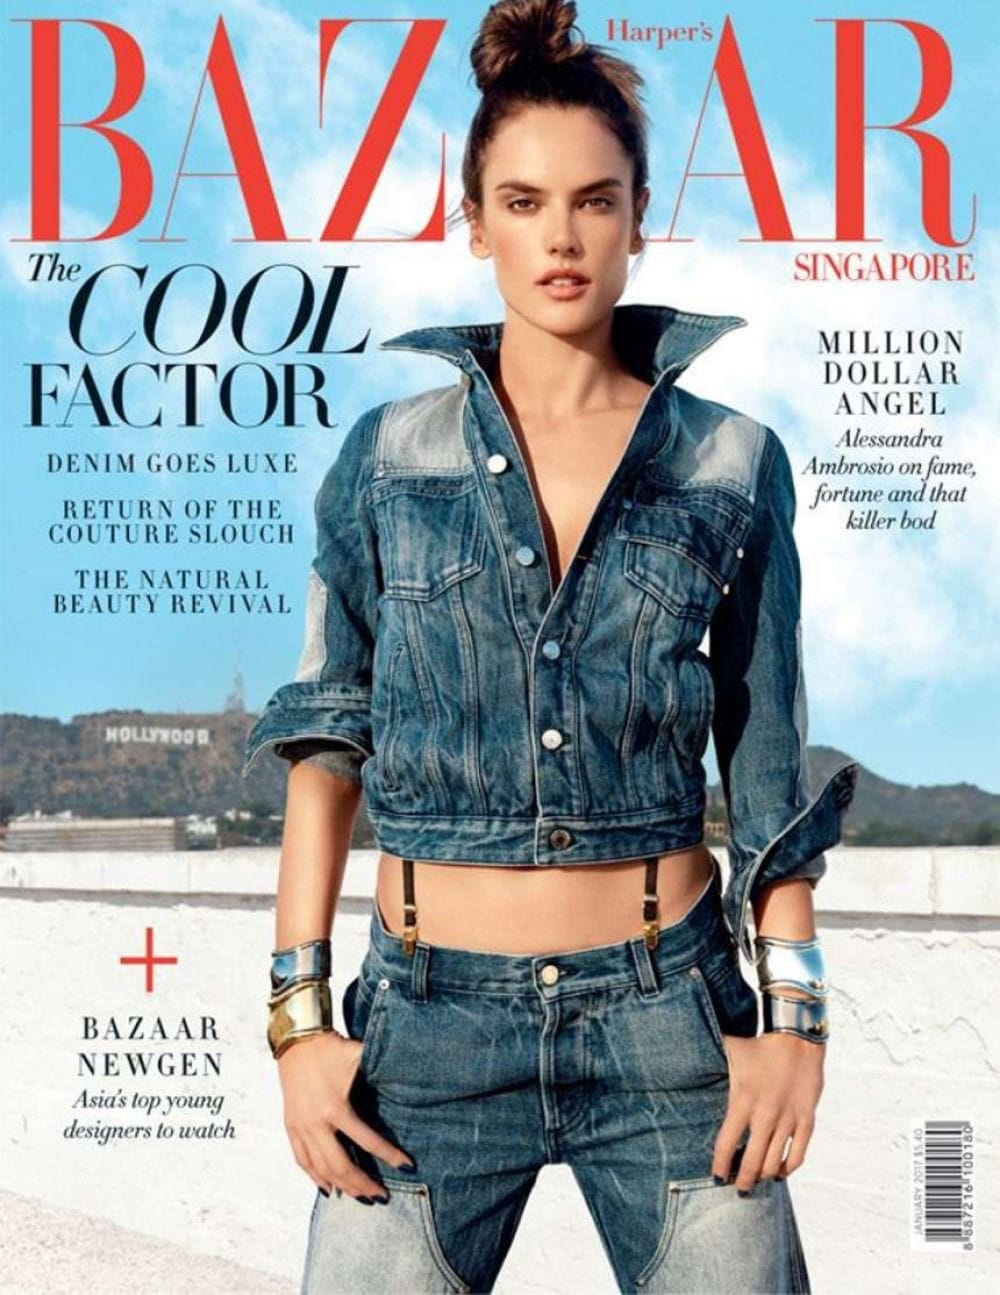 alessandra-ambrosio-in-harper-s-bazaar-magazine-singapore-january-2017-issue_2